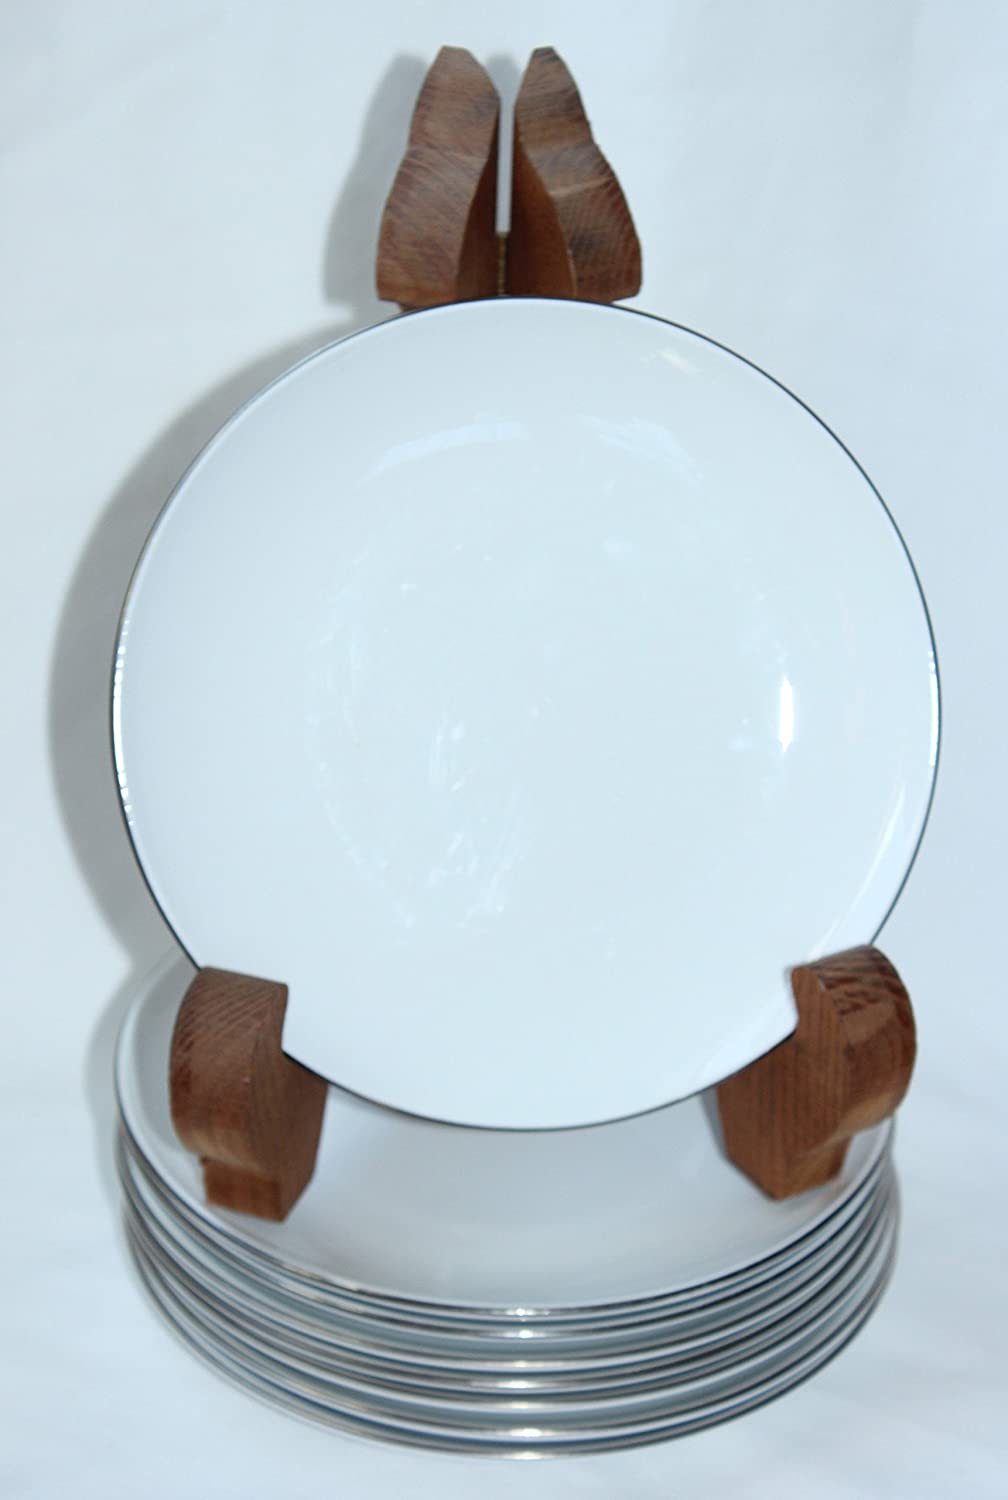 Corning Centura Max 47% OFF White PLATINUM EDGE and Bread Coupe Butter 5 ☆ very popular Plate